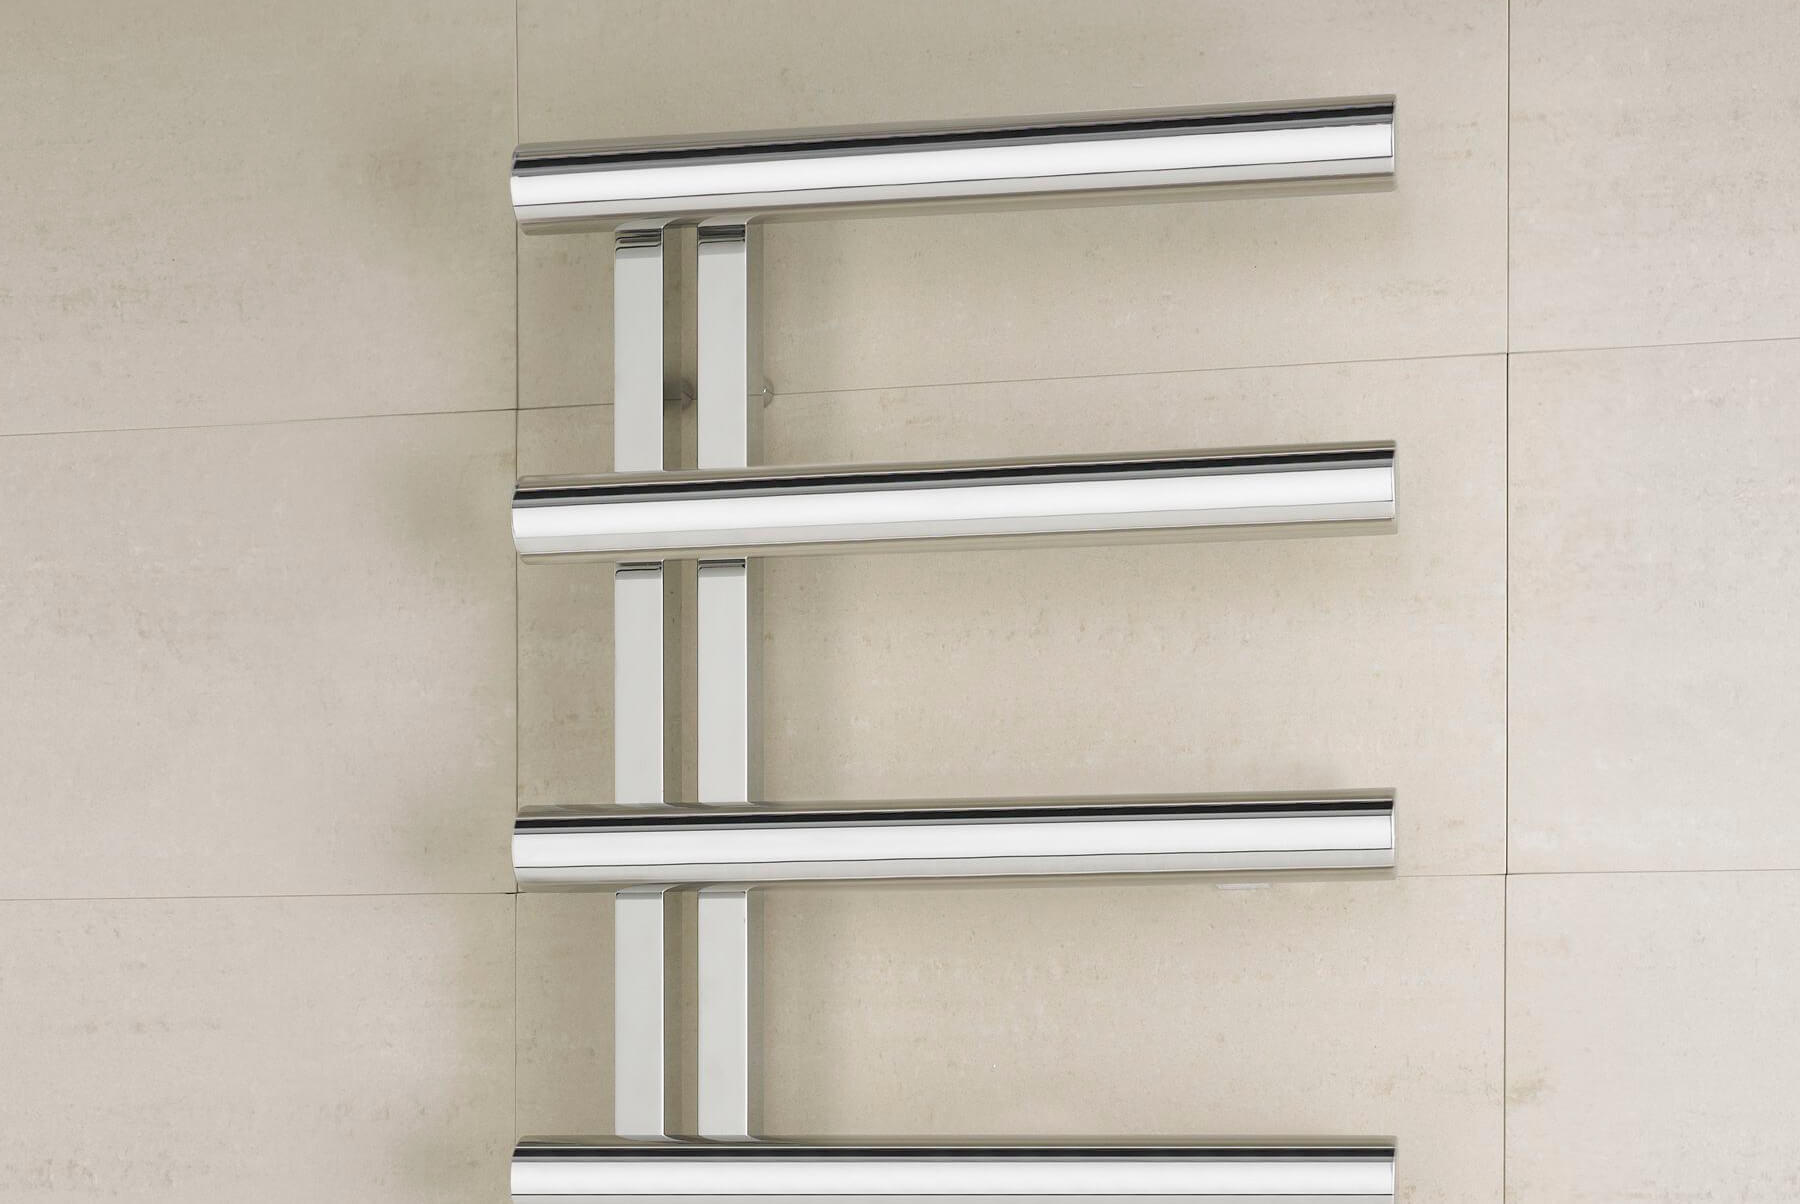 Radiators-&-Towel-Warmers-Bisque-Chime-Inset-2-1800x1204